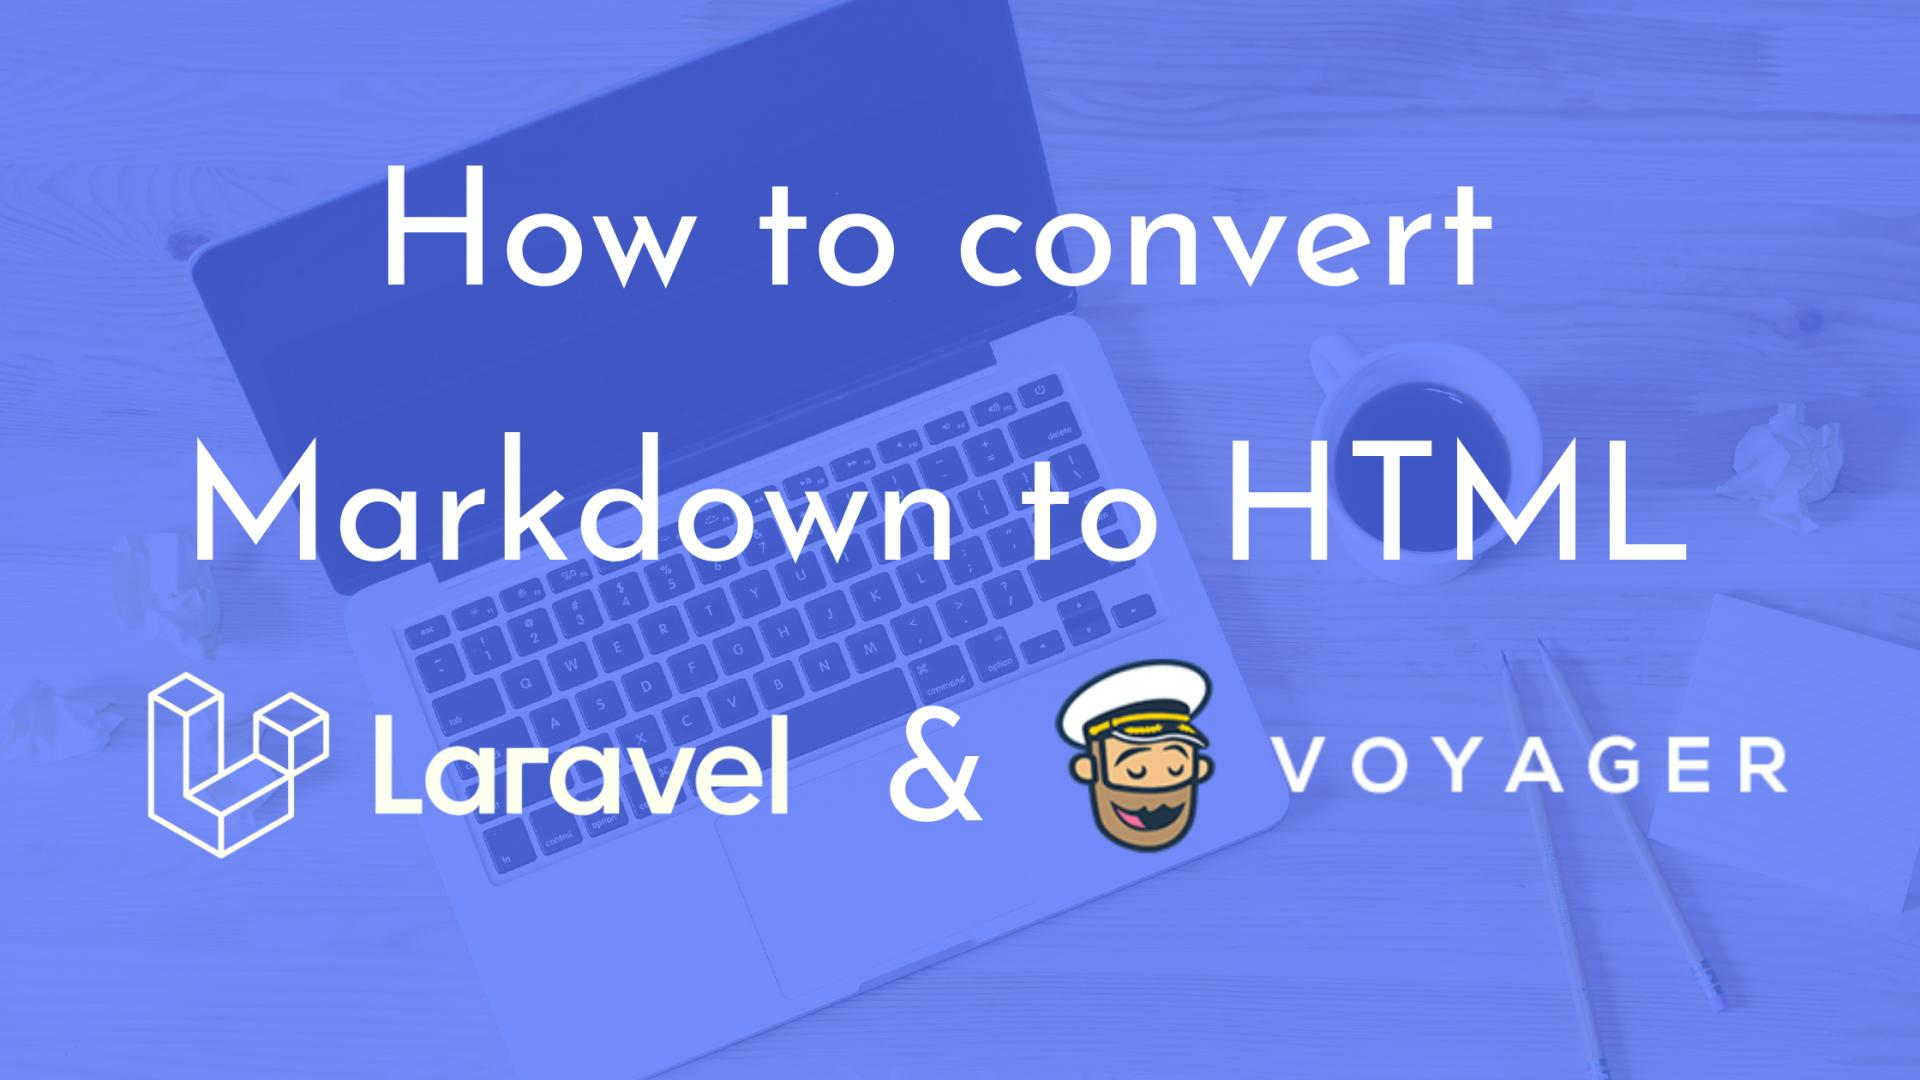 How to convert markdown to HTML in Laravel and Voyager?